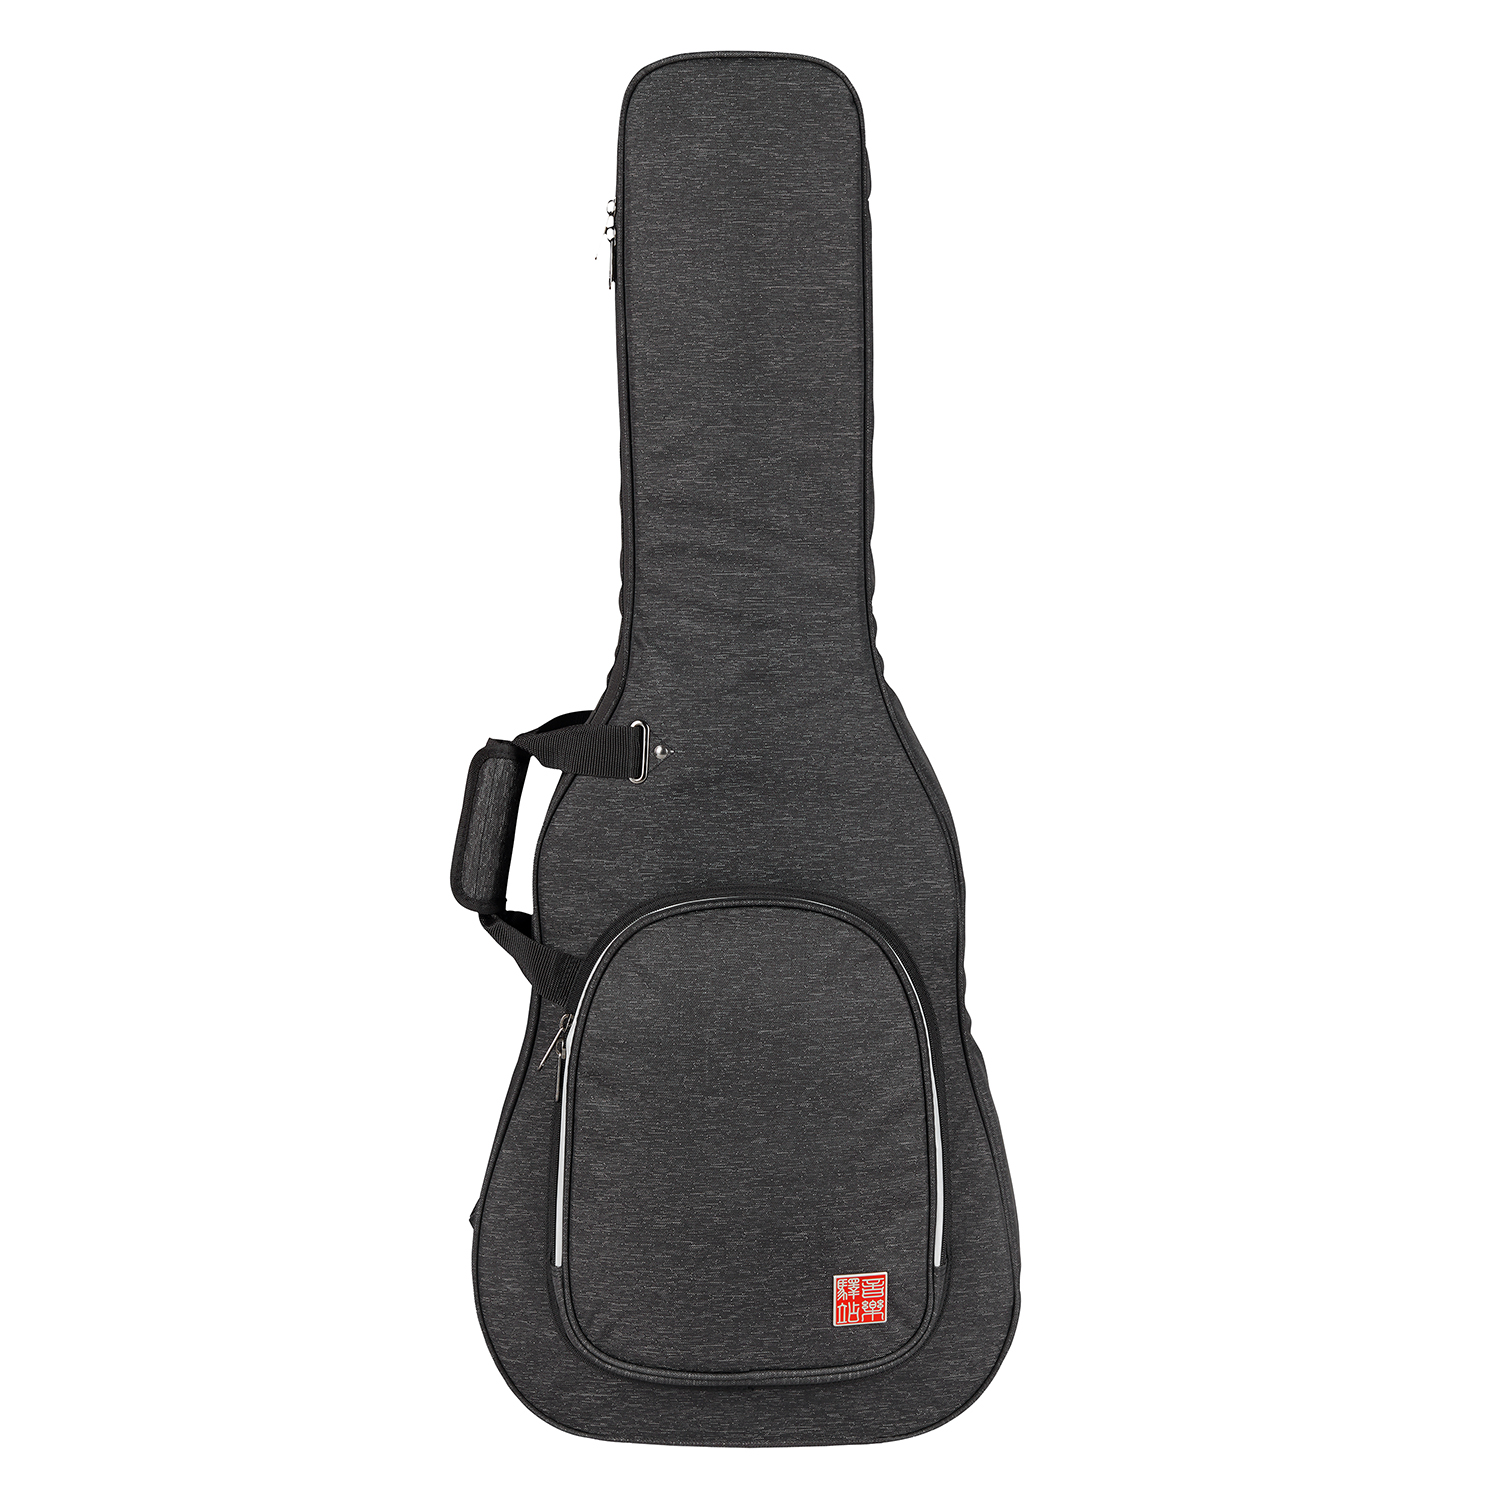 Music Area RB20 Electric Guitar Gig Bag Waterproof with 20mm cushion protection - Black 12mm waterproof soprano concert ukulele bag case backpack 23 24 26 inch ukelele beige mini guitar accessories gig pu leather